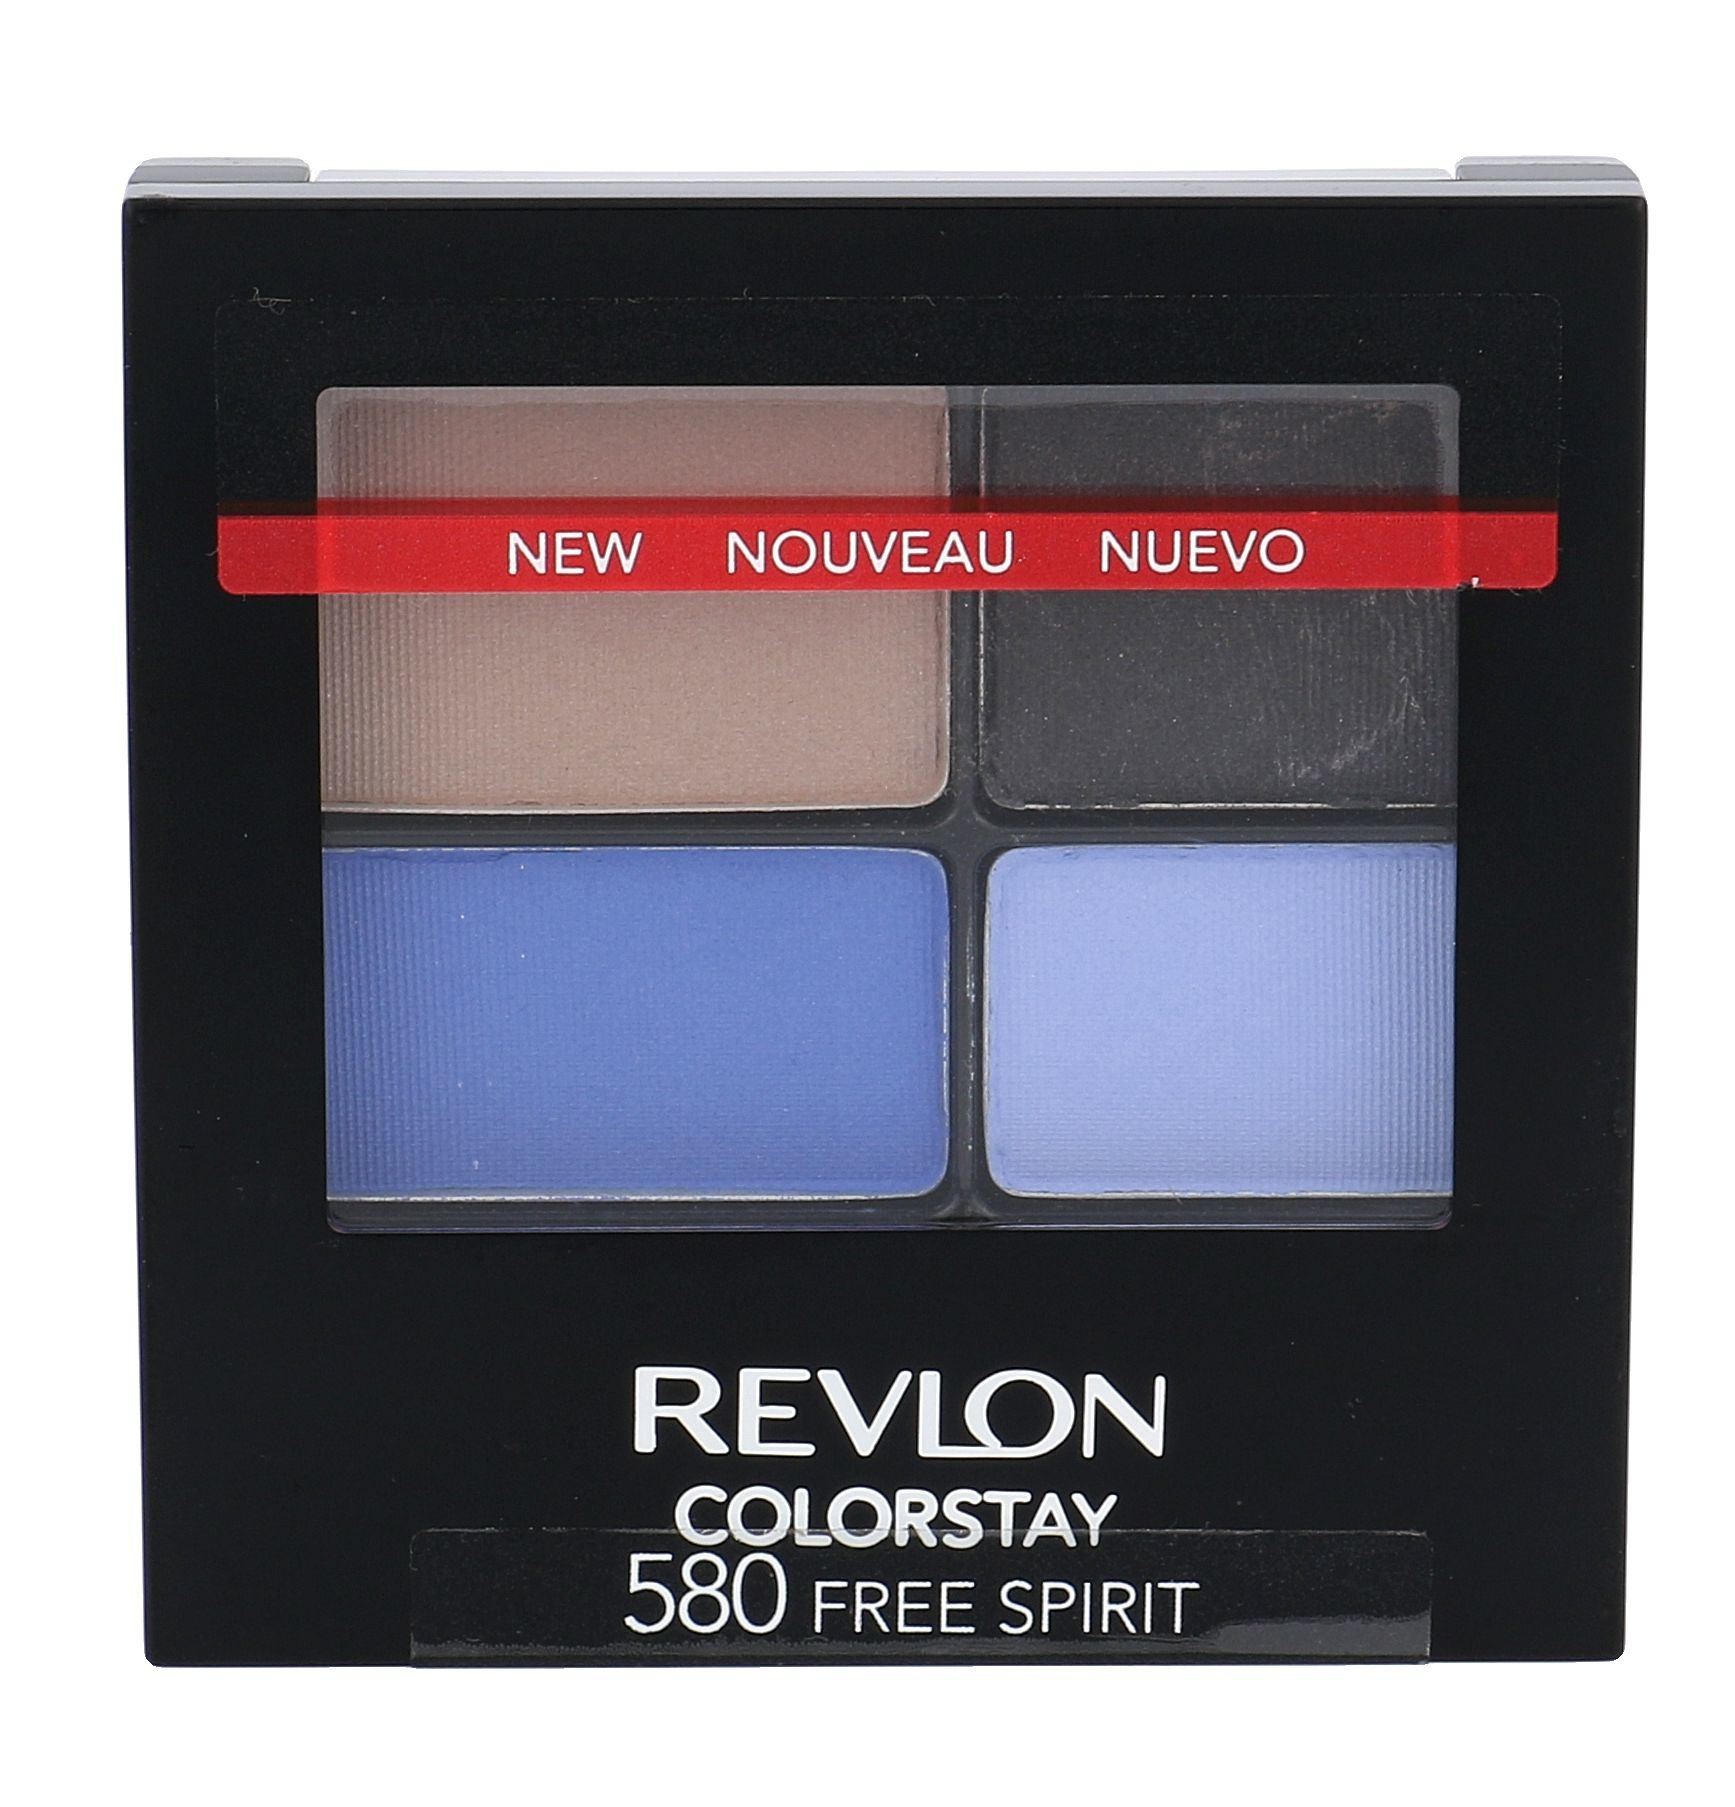 Revlon Colorstay Cosmetic 4,8ml 580 Free Spirit 16 Hour